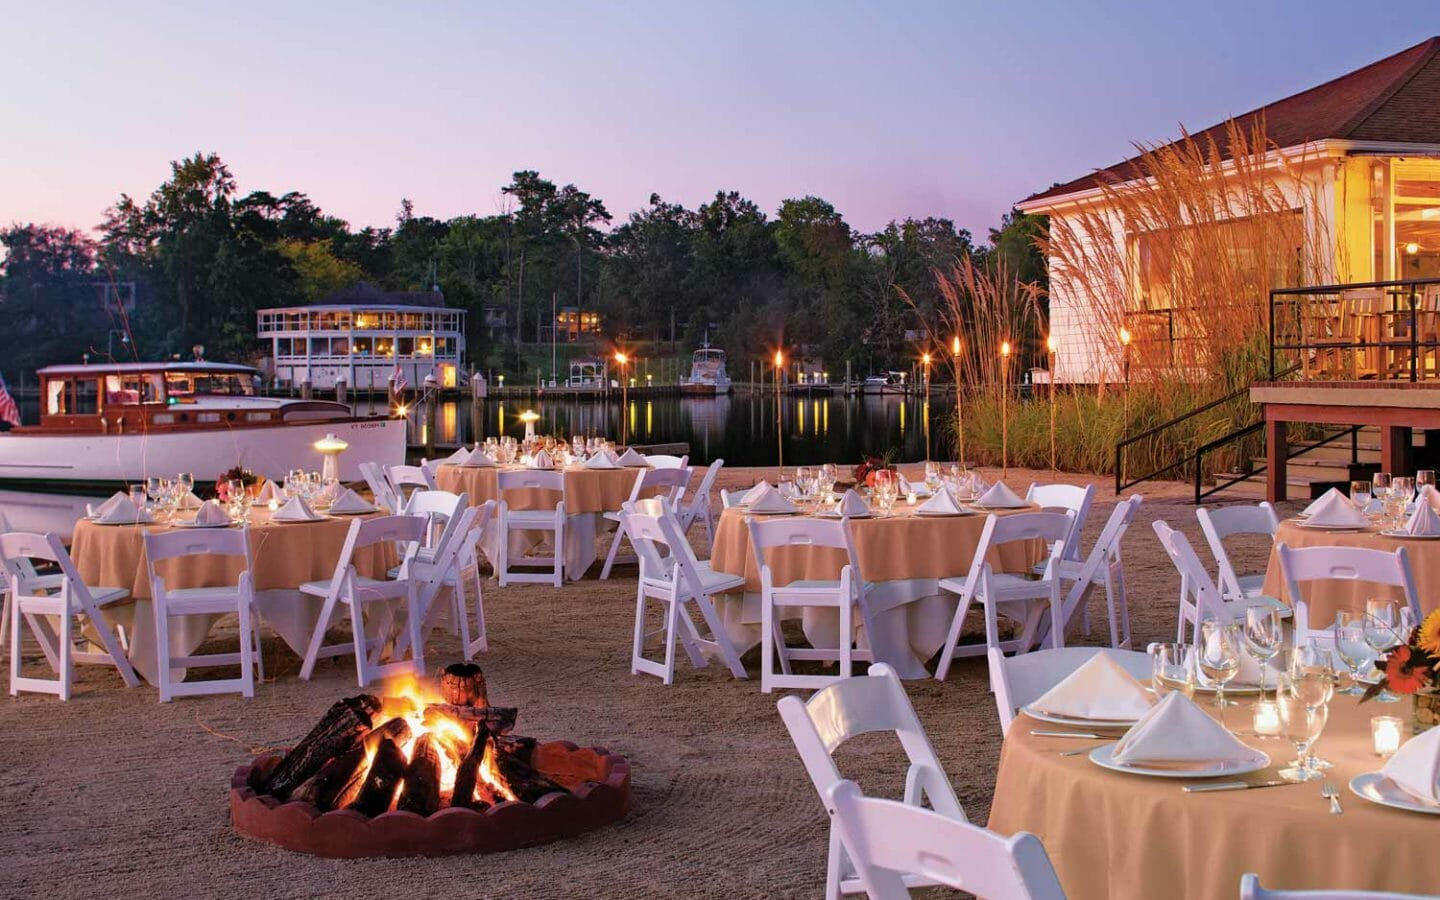 Waterfront Event Space in Virginia | Tides Inn